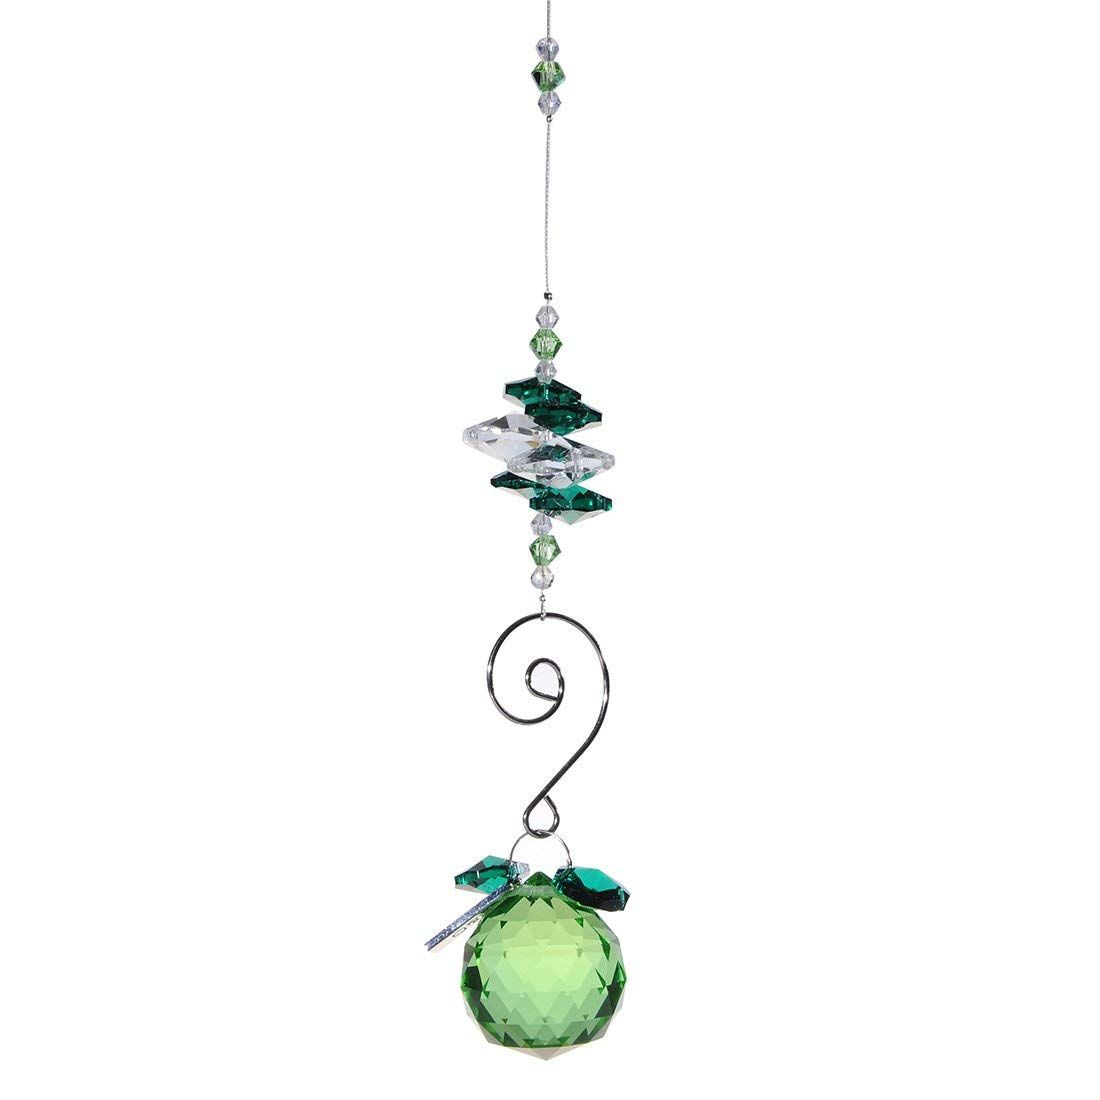 Amazon.com : H&D 30mm Crystal Ball Chandelier Prism ...